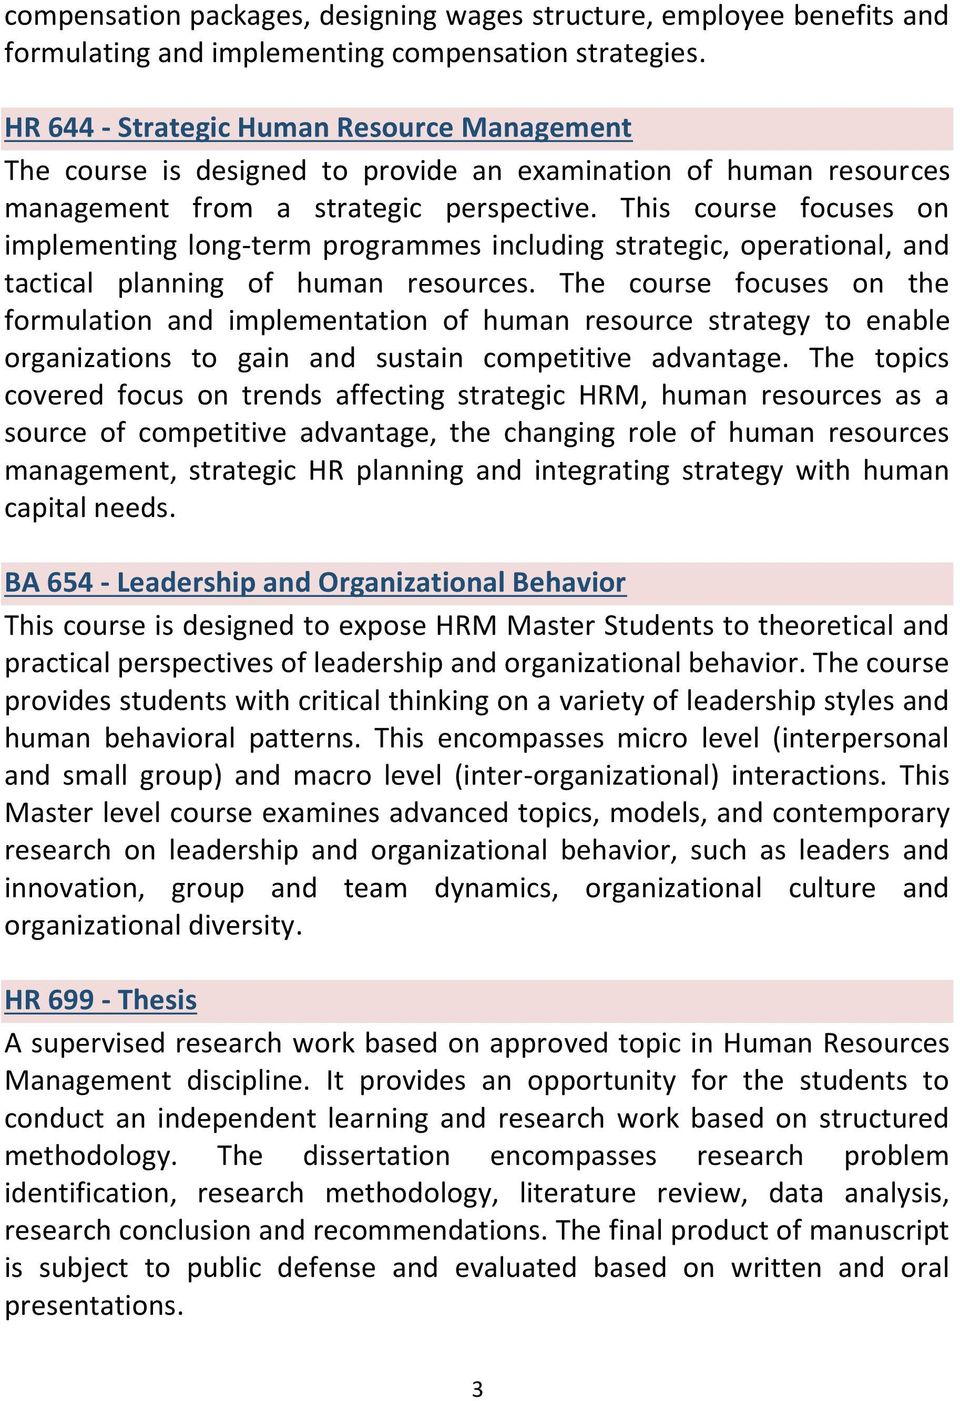 This course focuses on implementing long-term programmes including strategic, operational, and tactical planning of human resources.